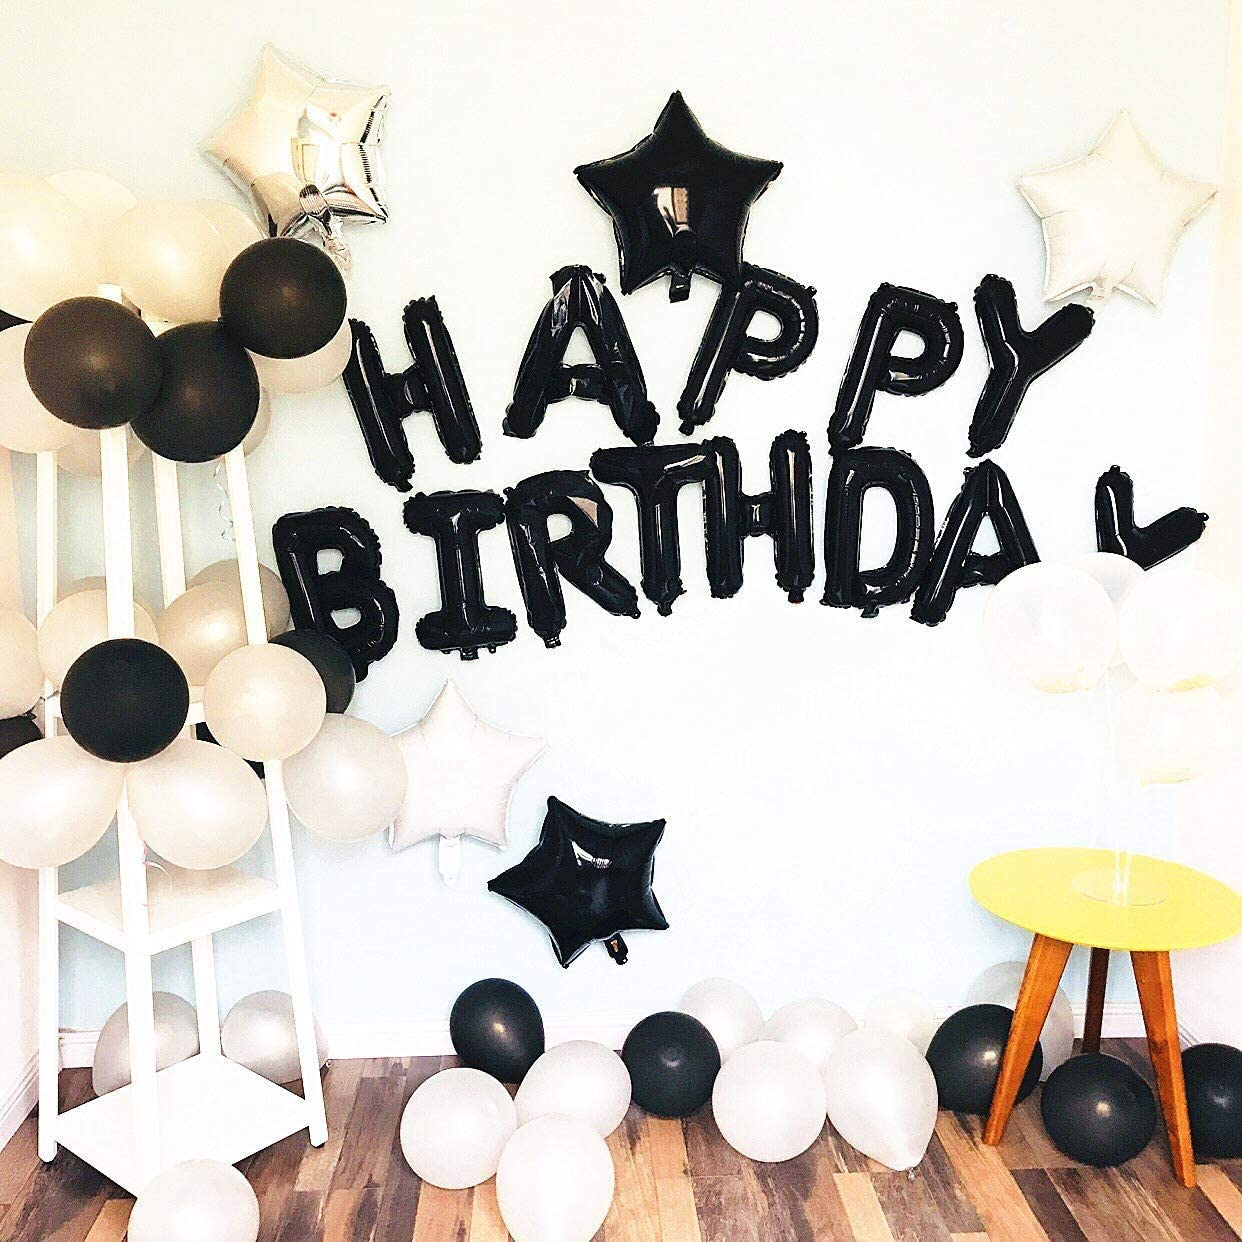 Details about  /Happy Birthday Balloon Banner Bunting Bright colors Letters Foil Balloons Party